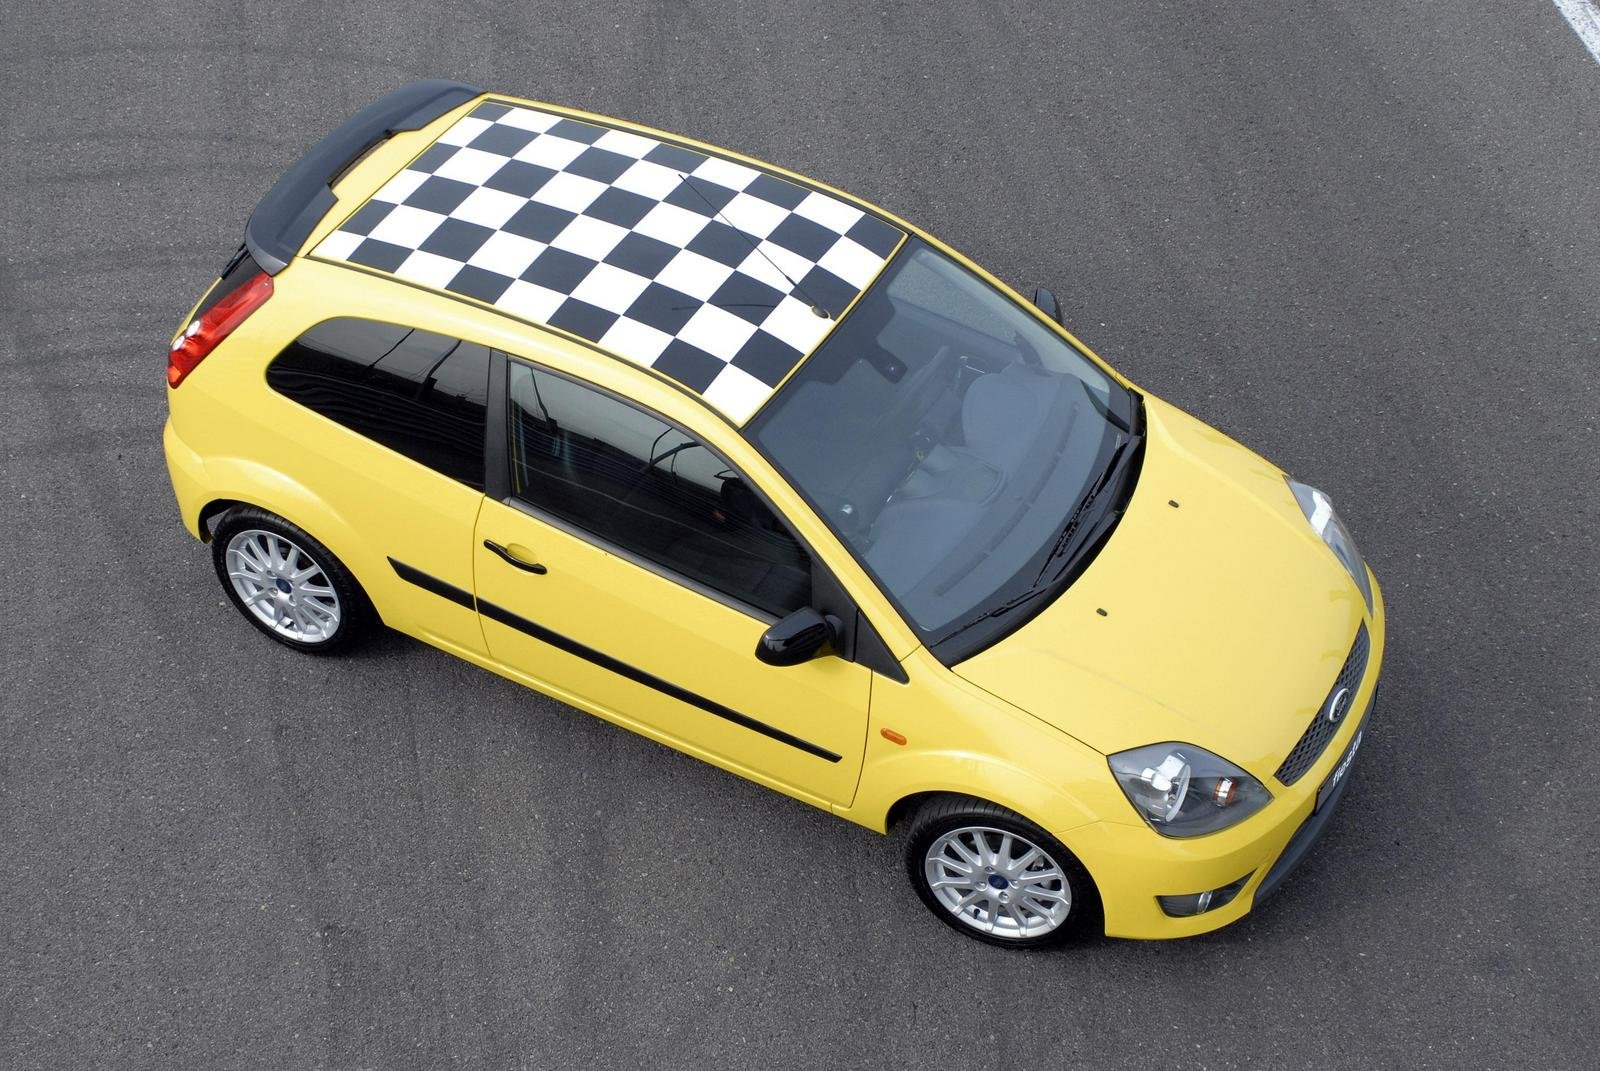 2007 Ford Fiesta Zetec S Quot Anniversary Quot Edition Review